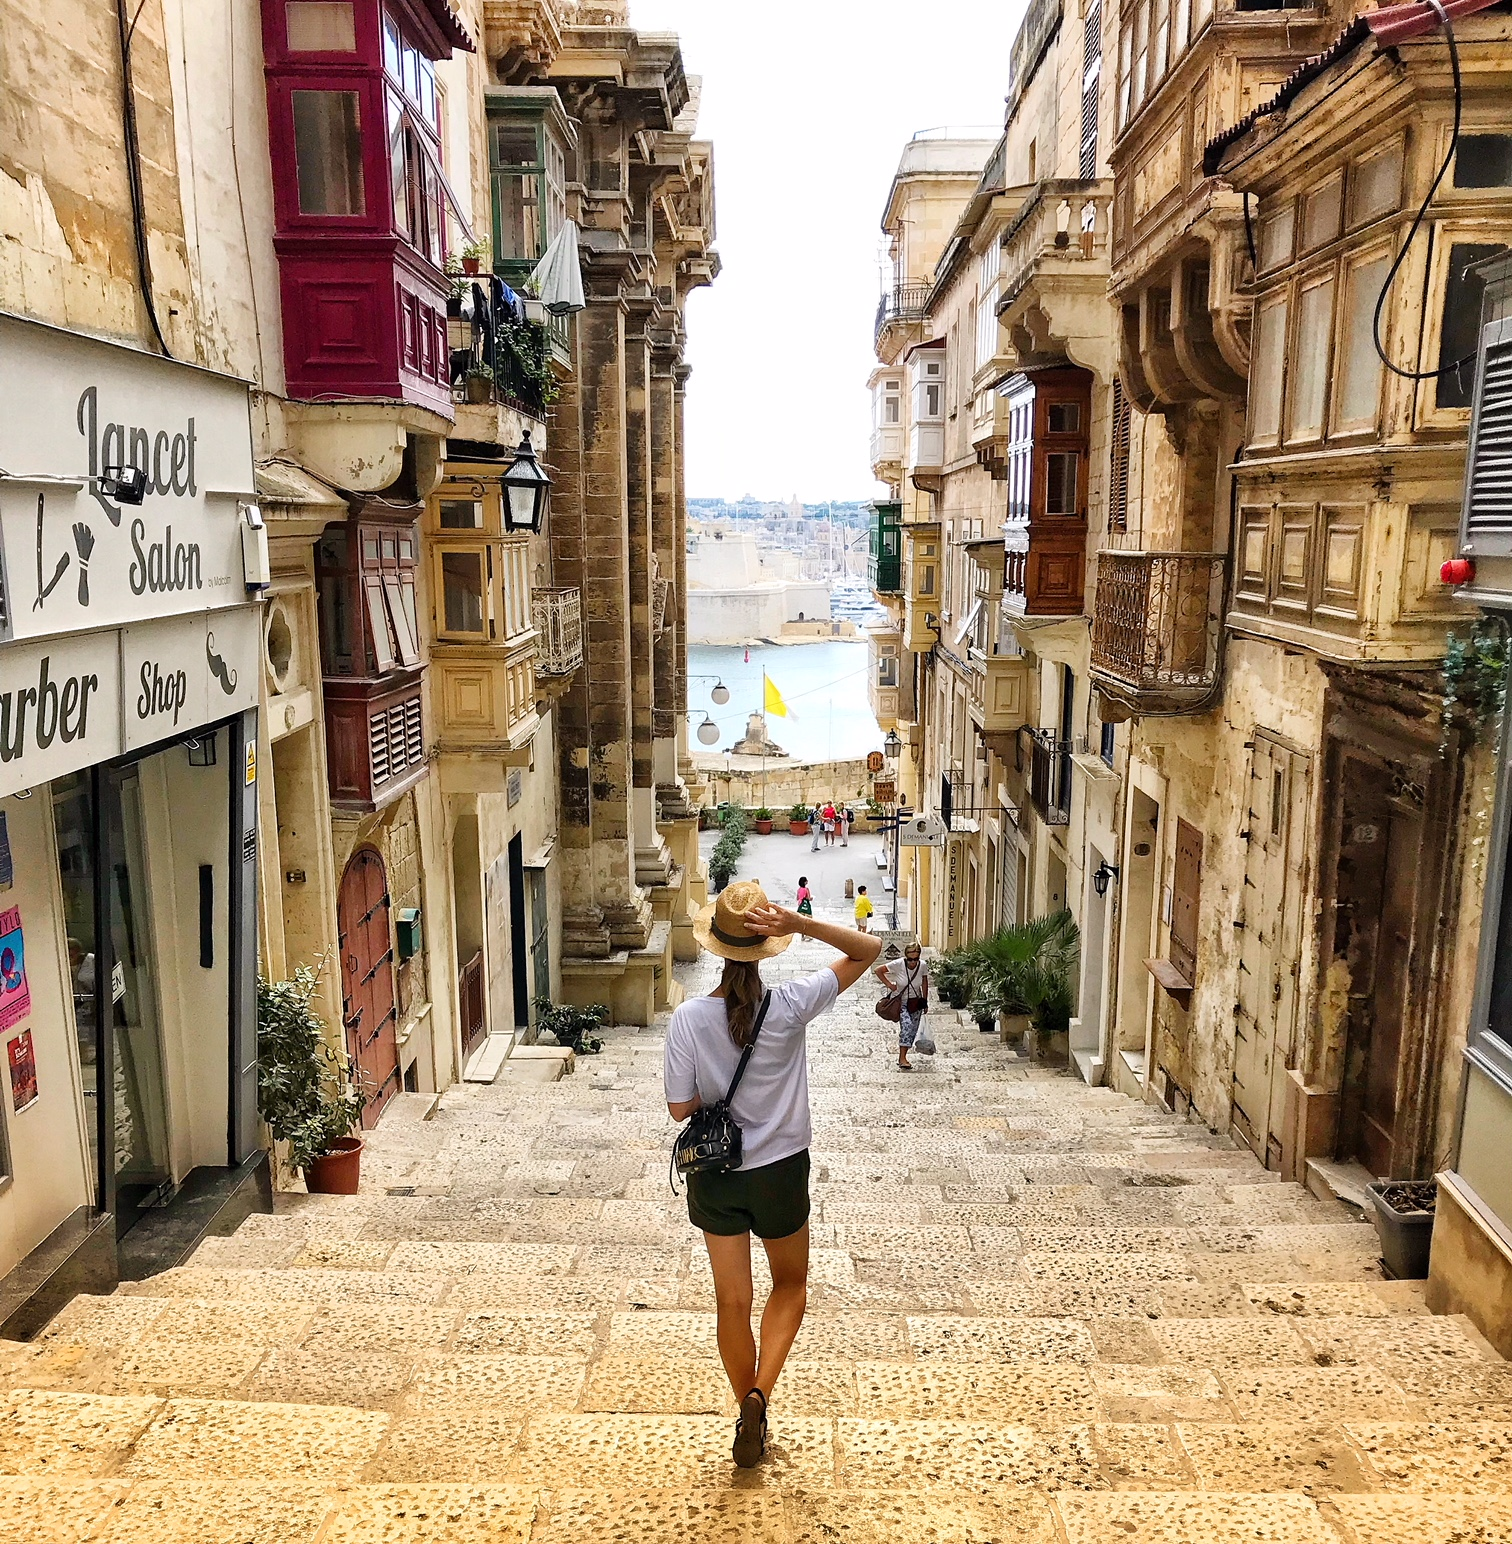 Streets of Malta's Capital, Valletta